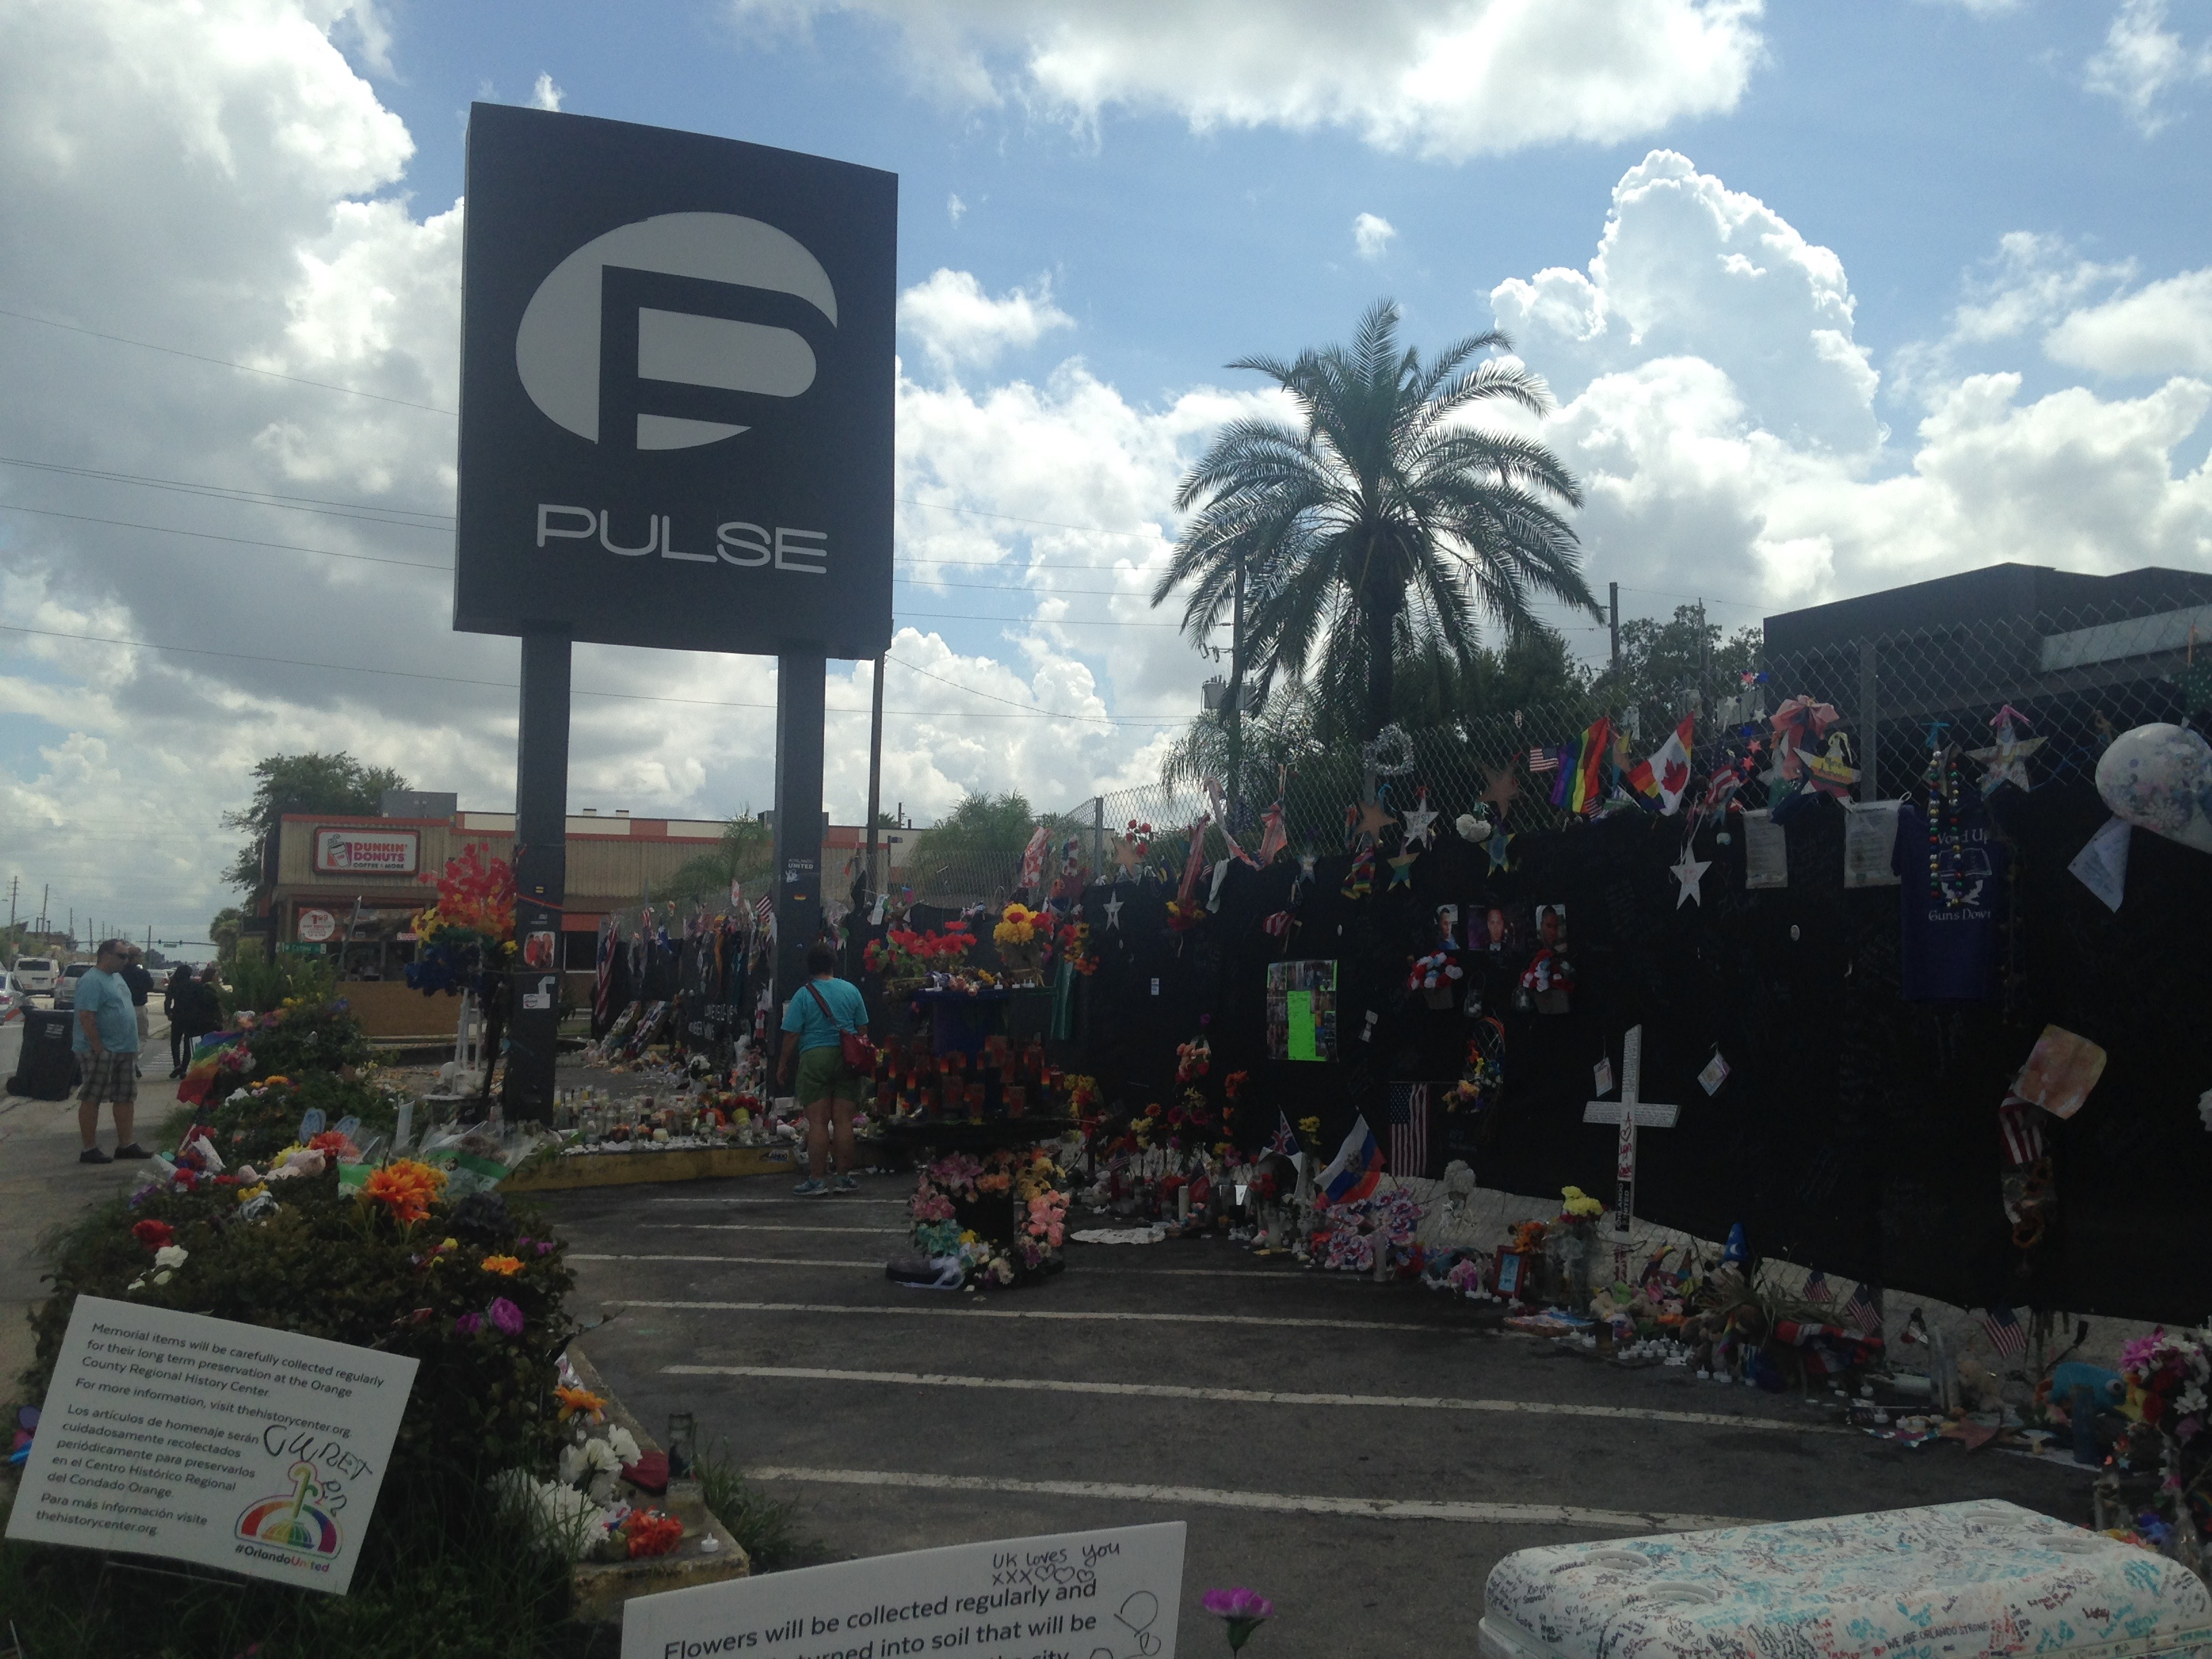 A photo of the Pulse nightclub sign with candles and other memorial items collected